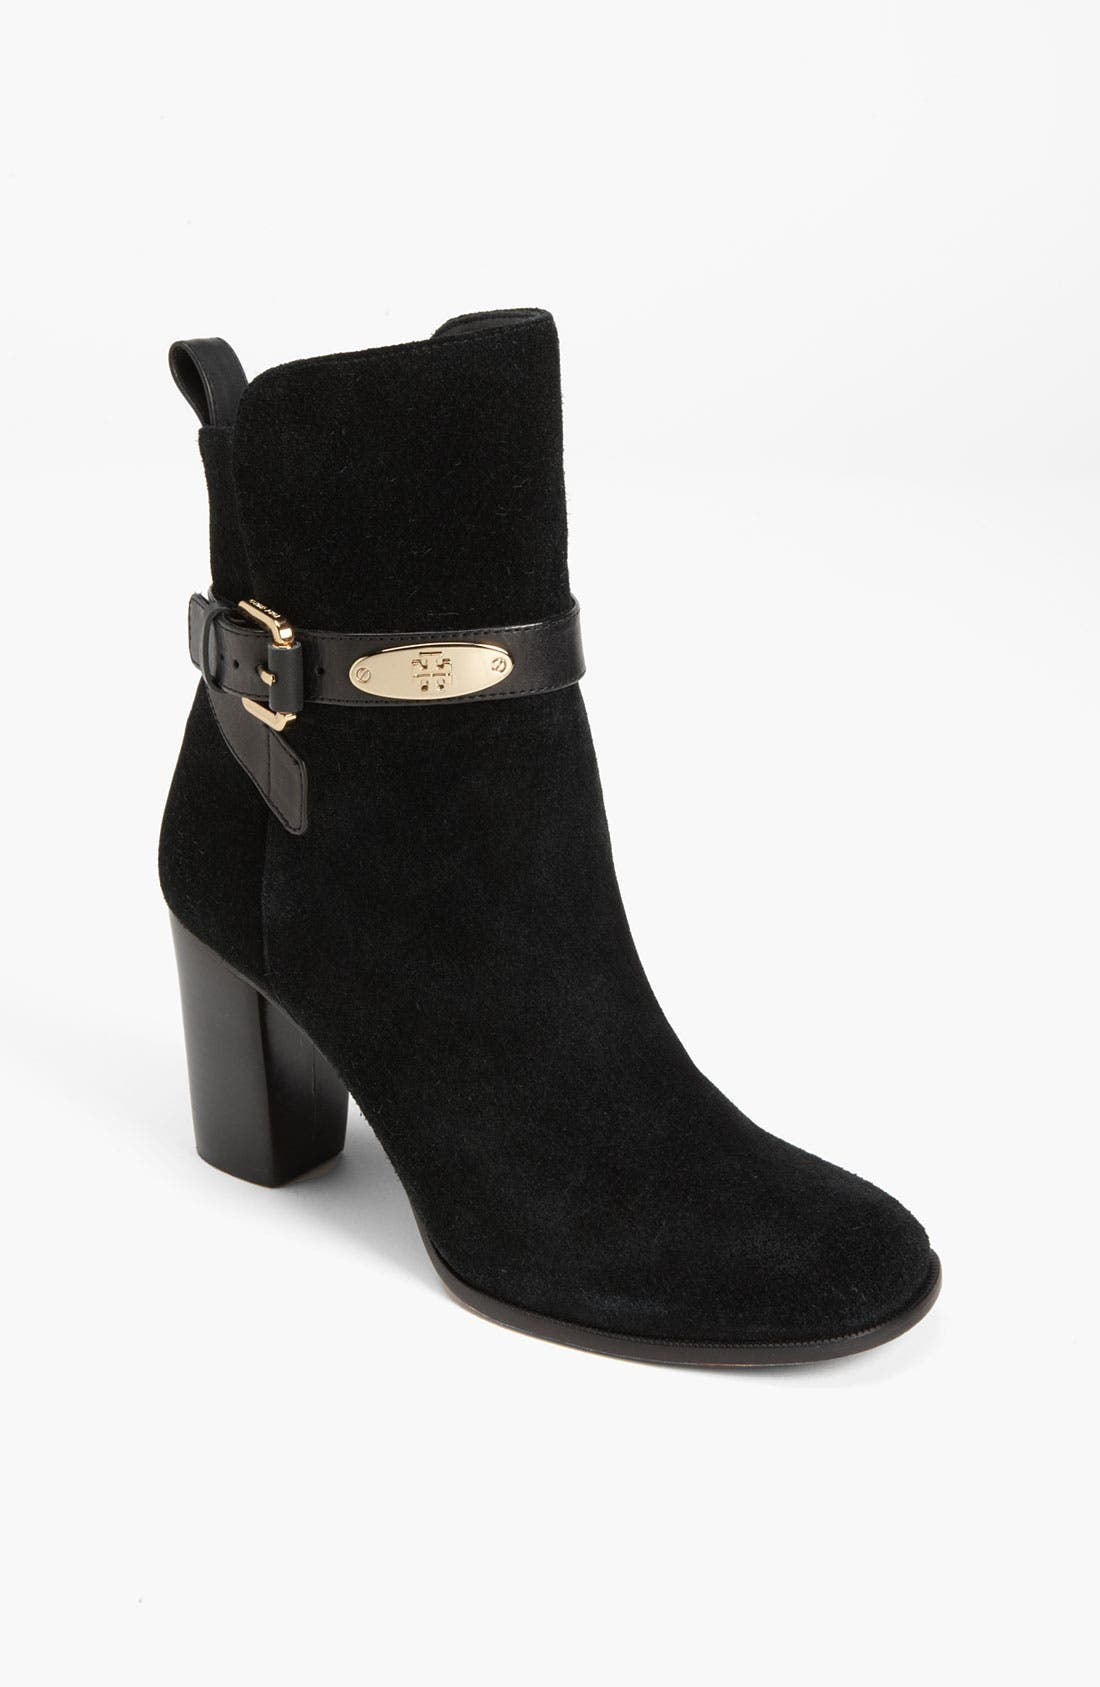 Main Image - Tory Burch 'Robynne' Bootie